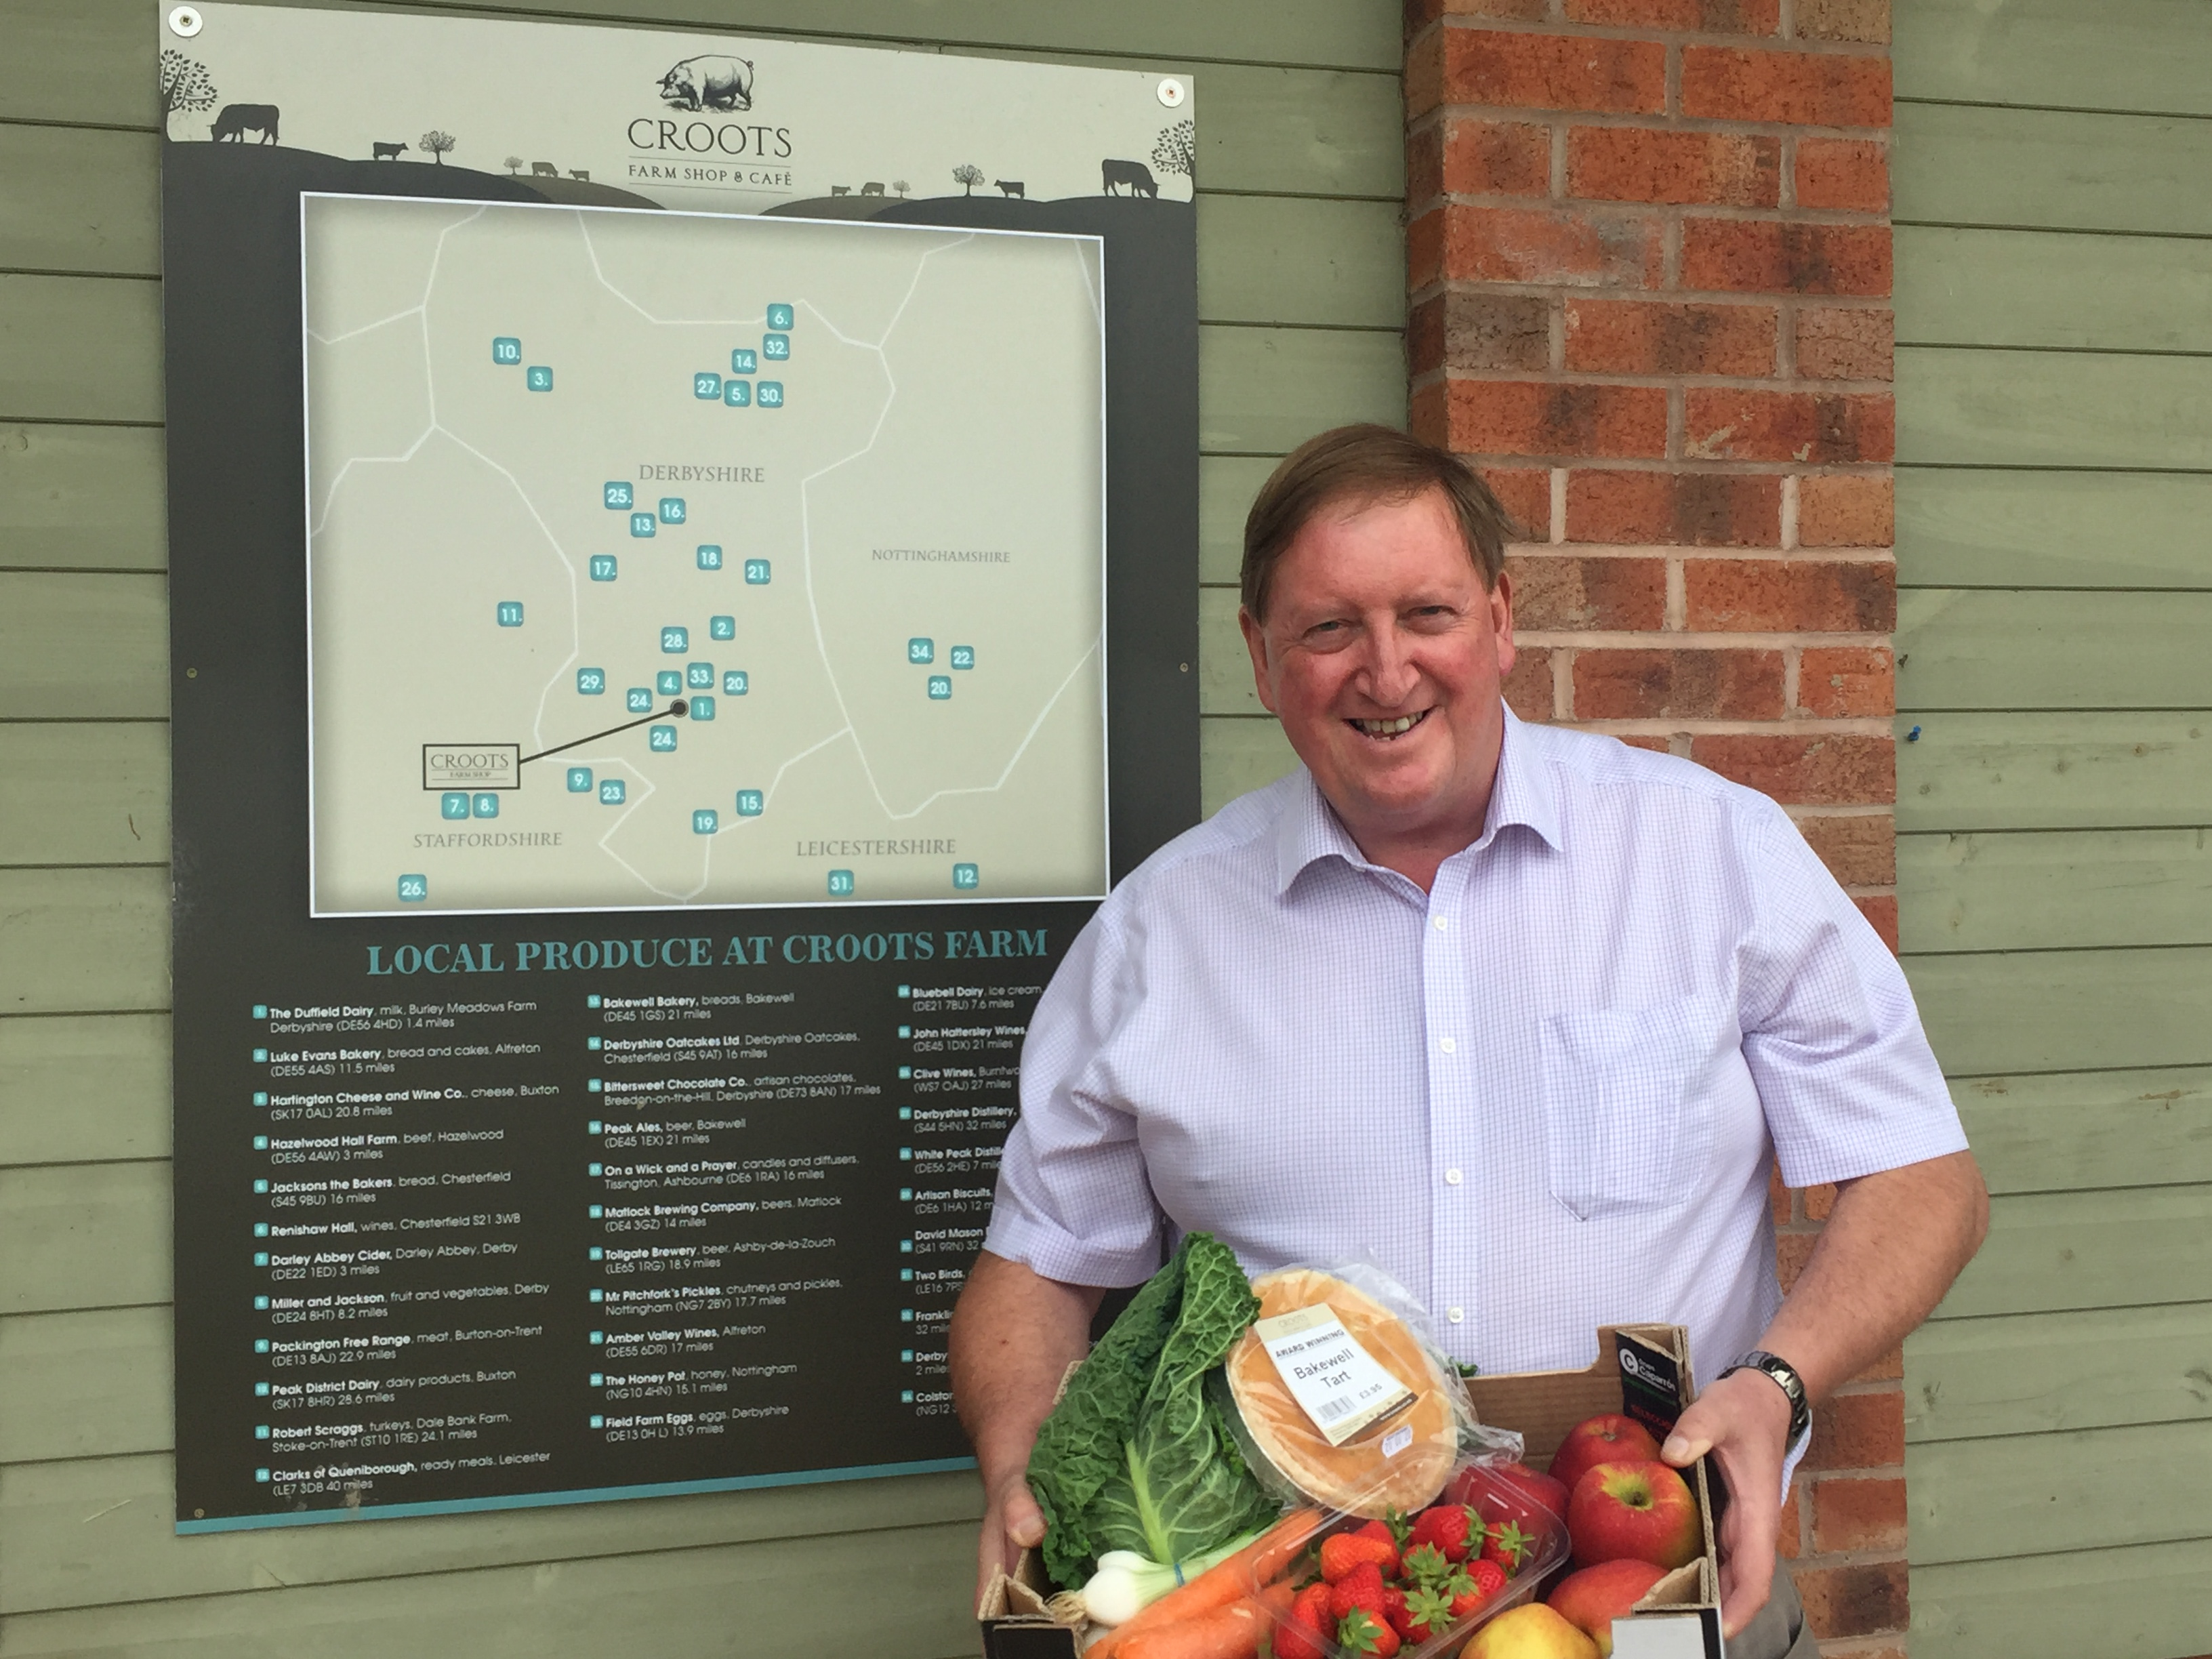 Croots Farm Shop in Derbyshire to re-open its store on 3rd July 2020 with a fresh new look